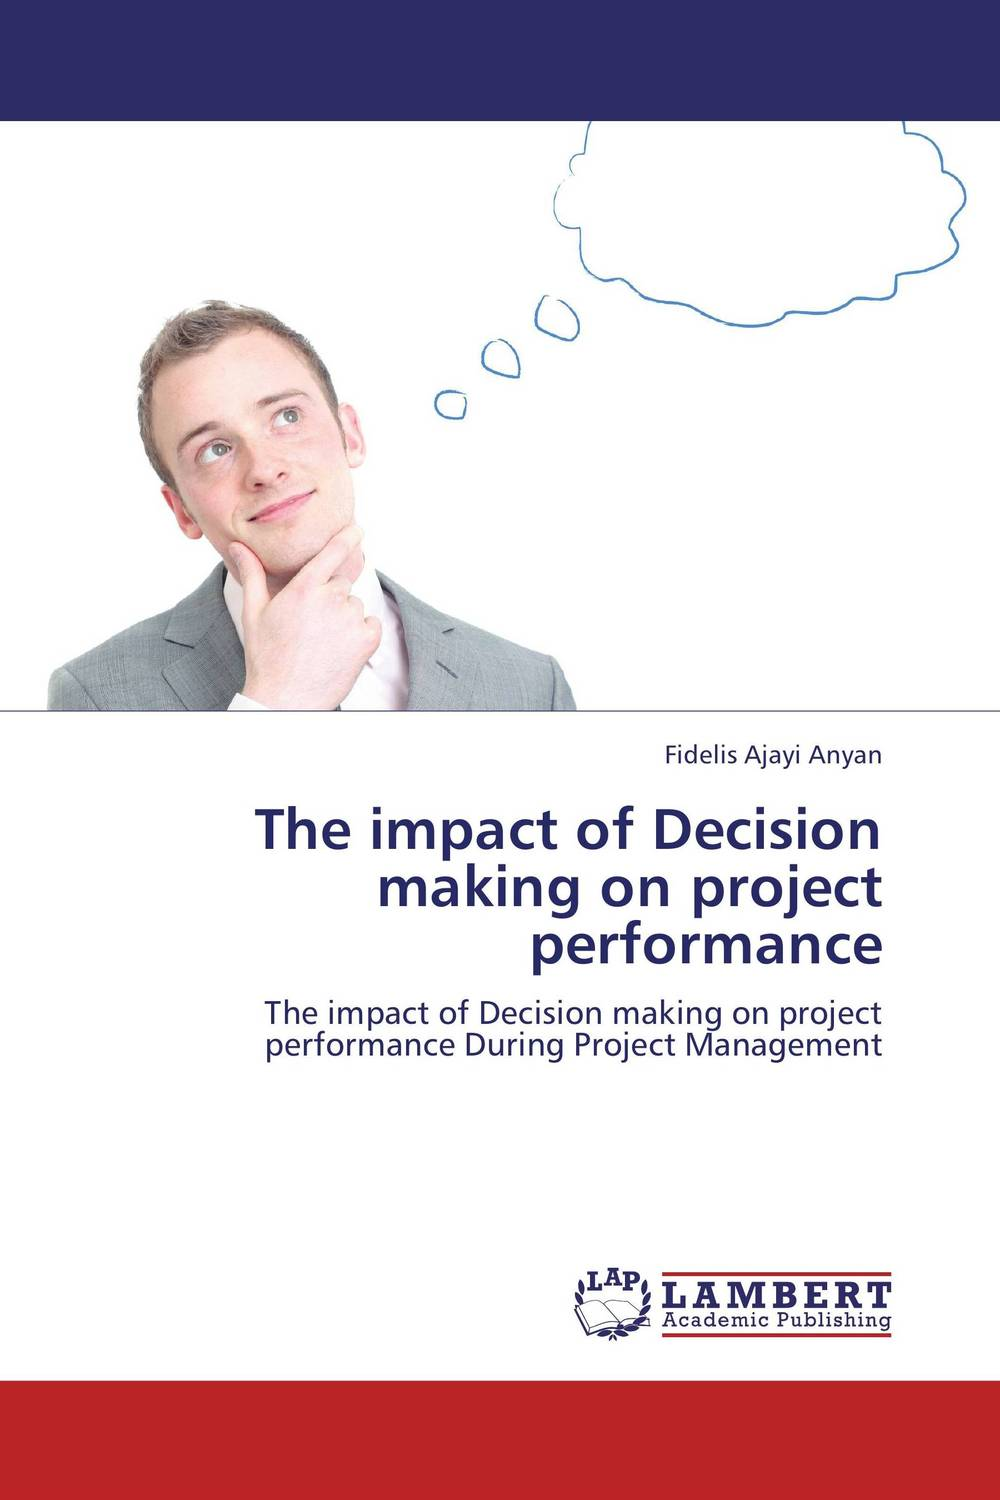 The impact of Decision making on project performance yuri raydugin project risk management essential methods for project teams and decision makers